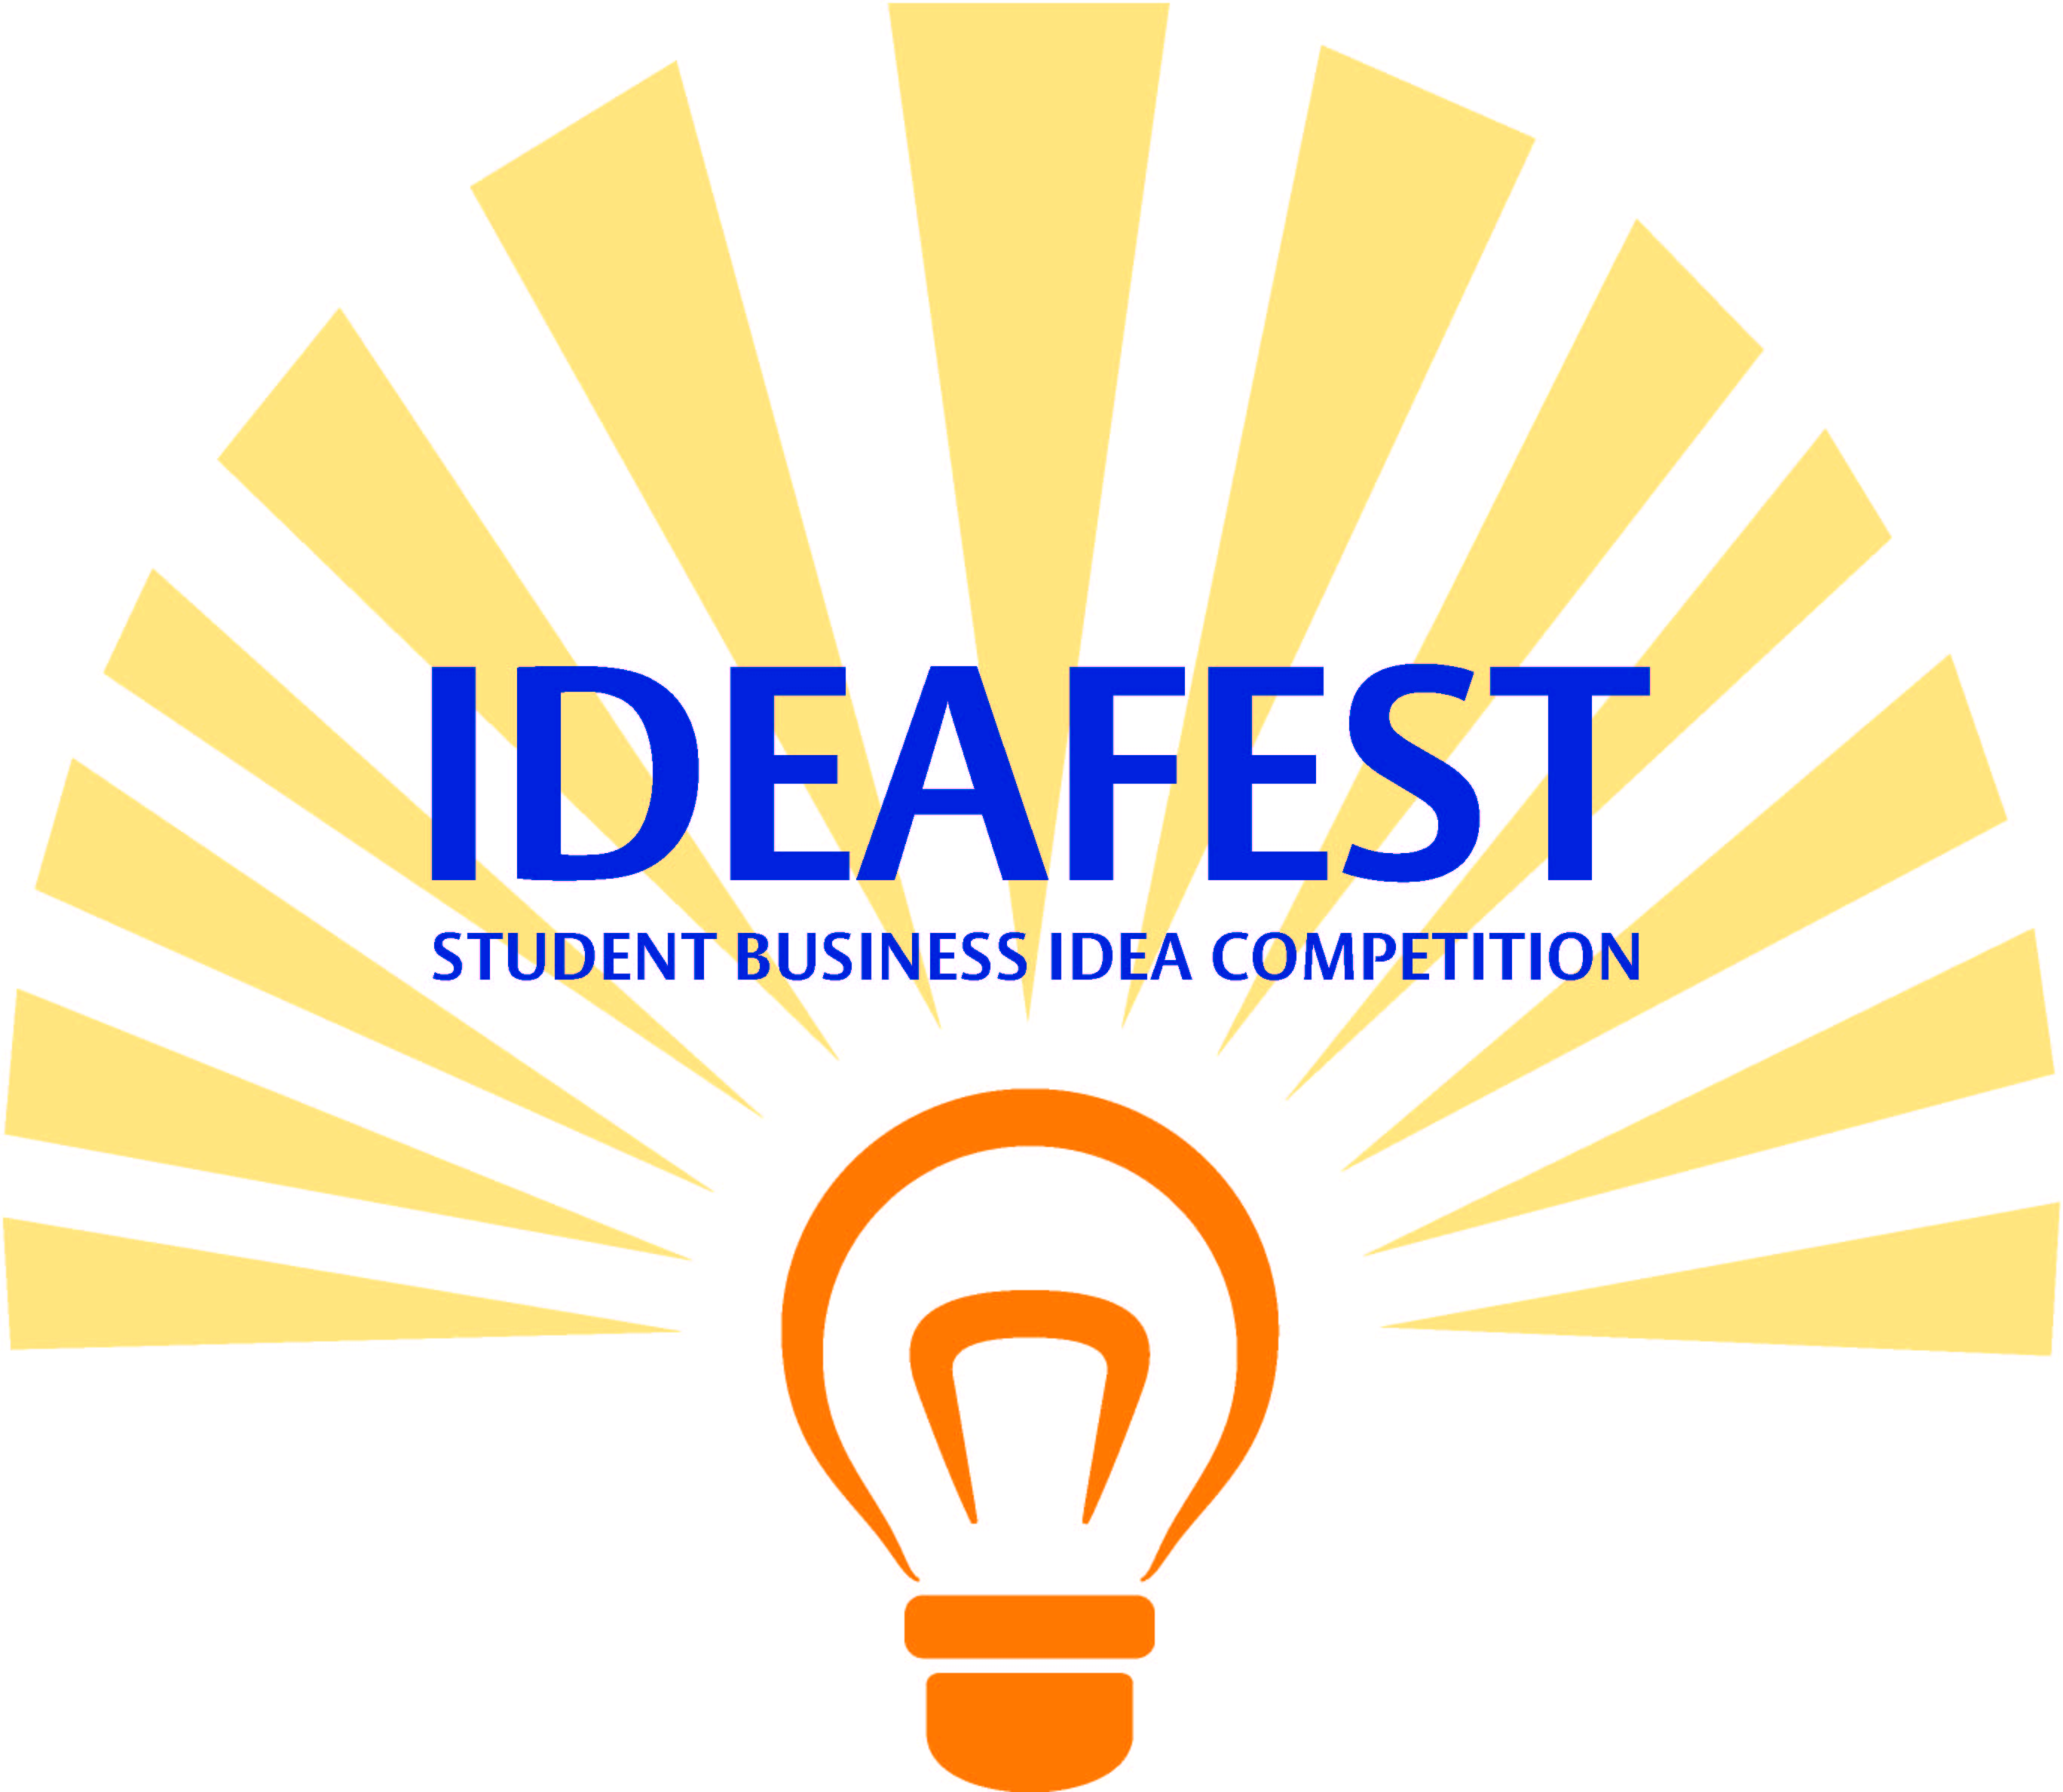 Ross Murphy with 'BuildSmart' wins IDEAFEST Student Business Idea Competition 2016